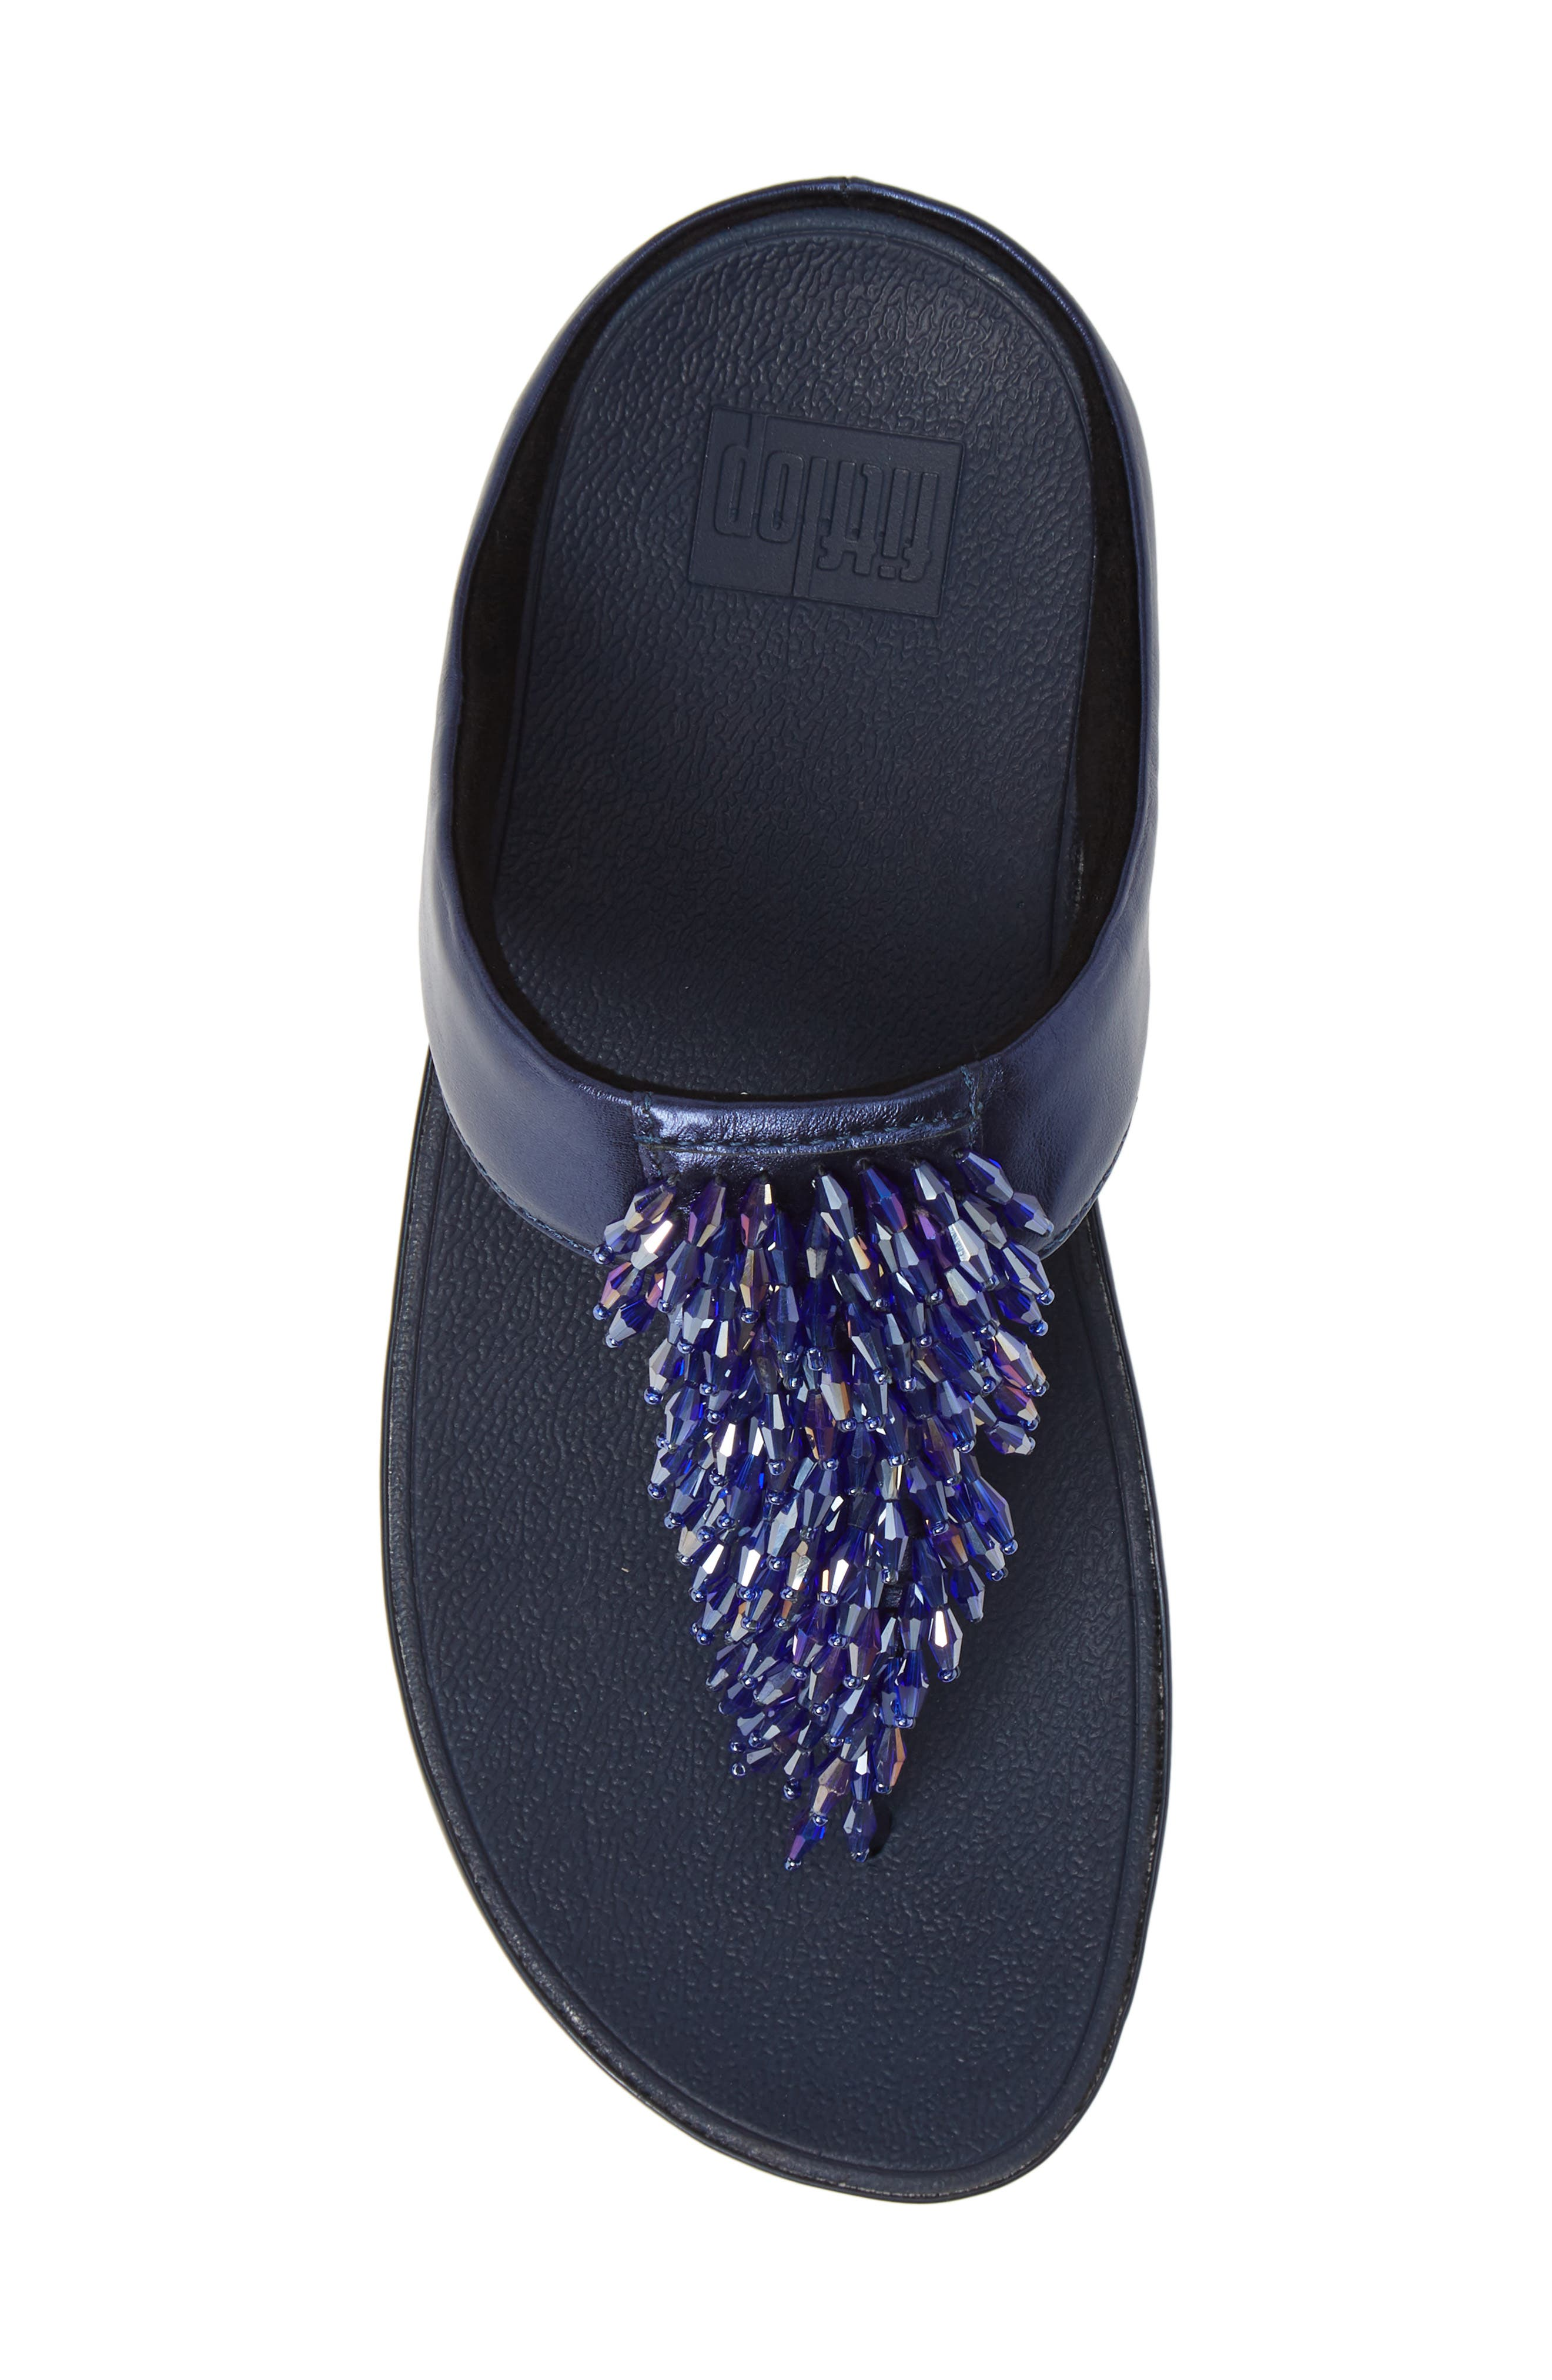 Rumba Flip Flop,                             Alternate thumbnail 5, color,                             METEOR BLUE LEATHER